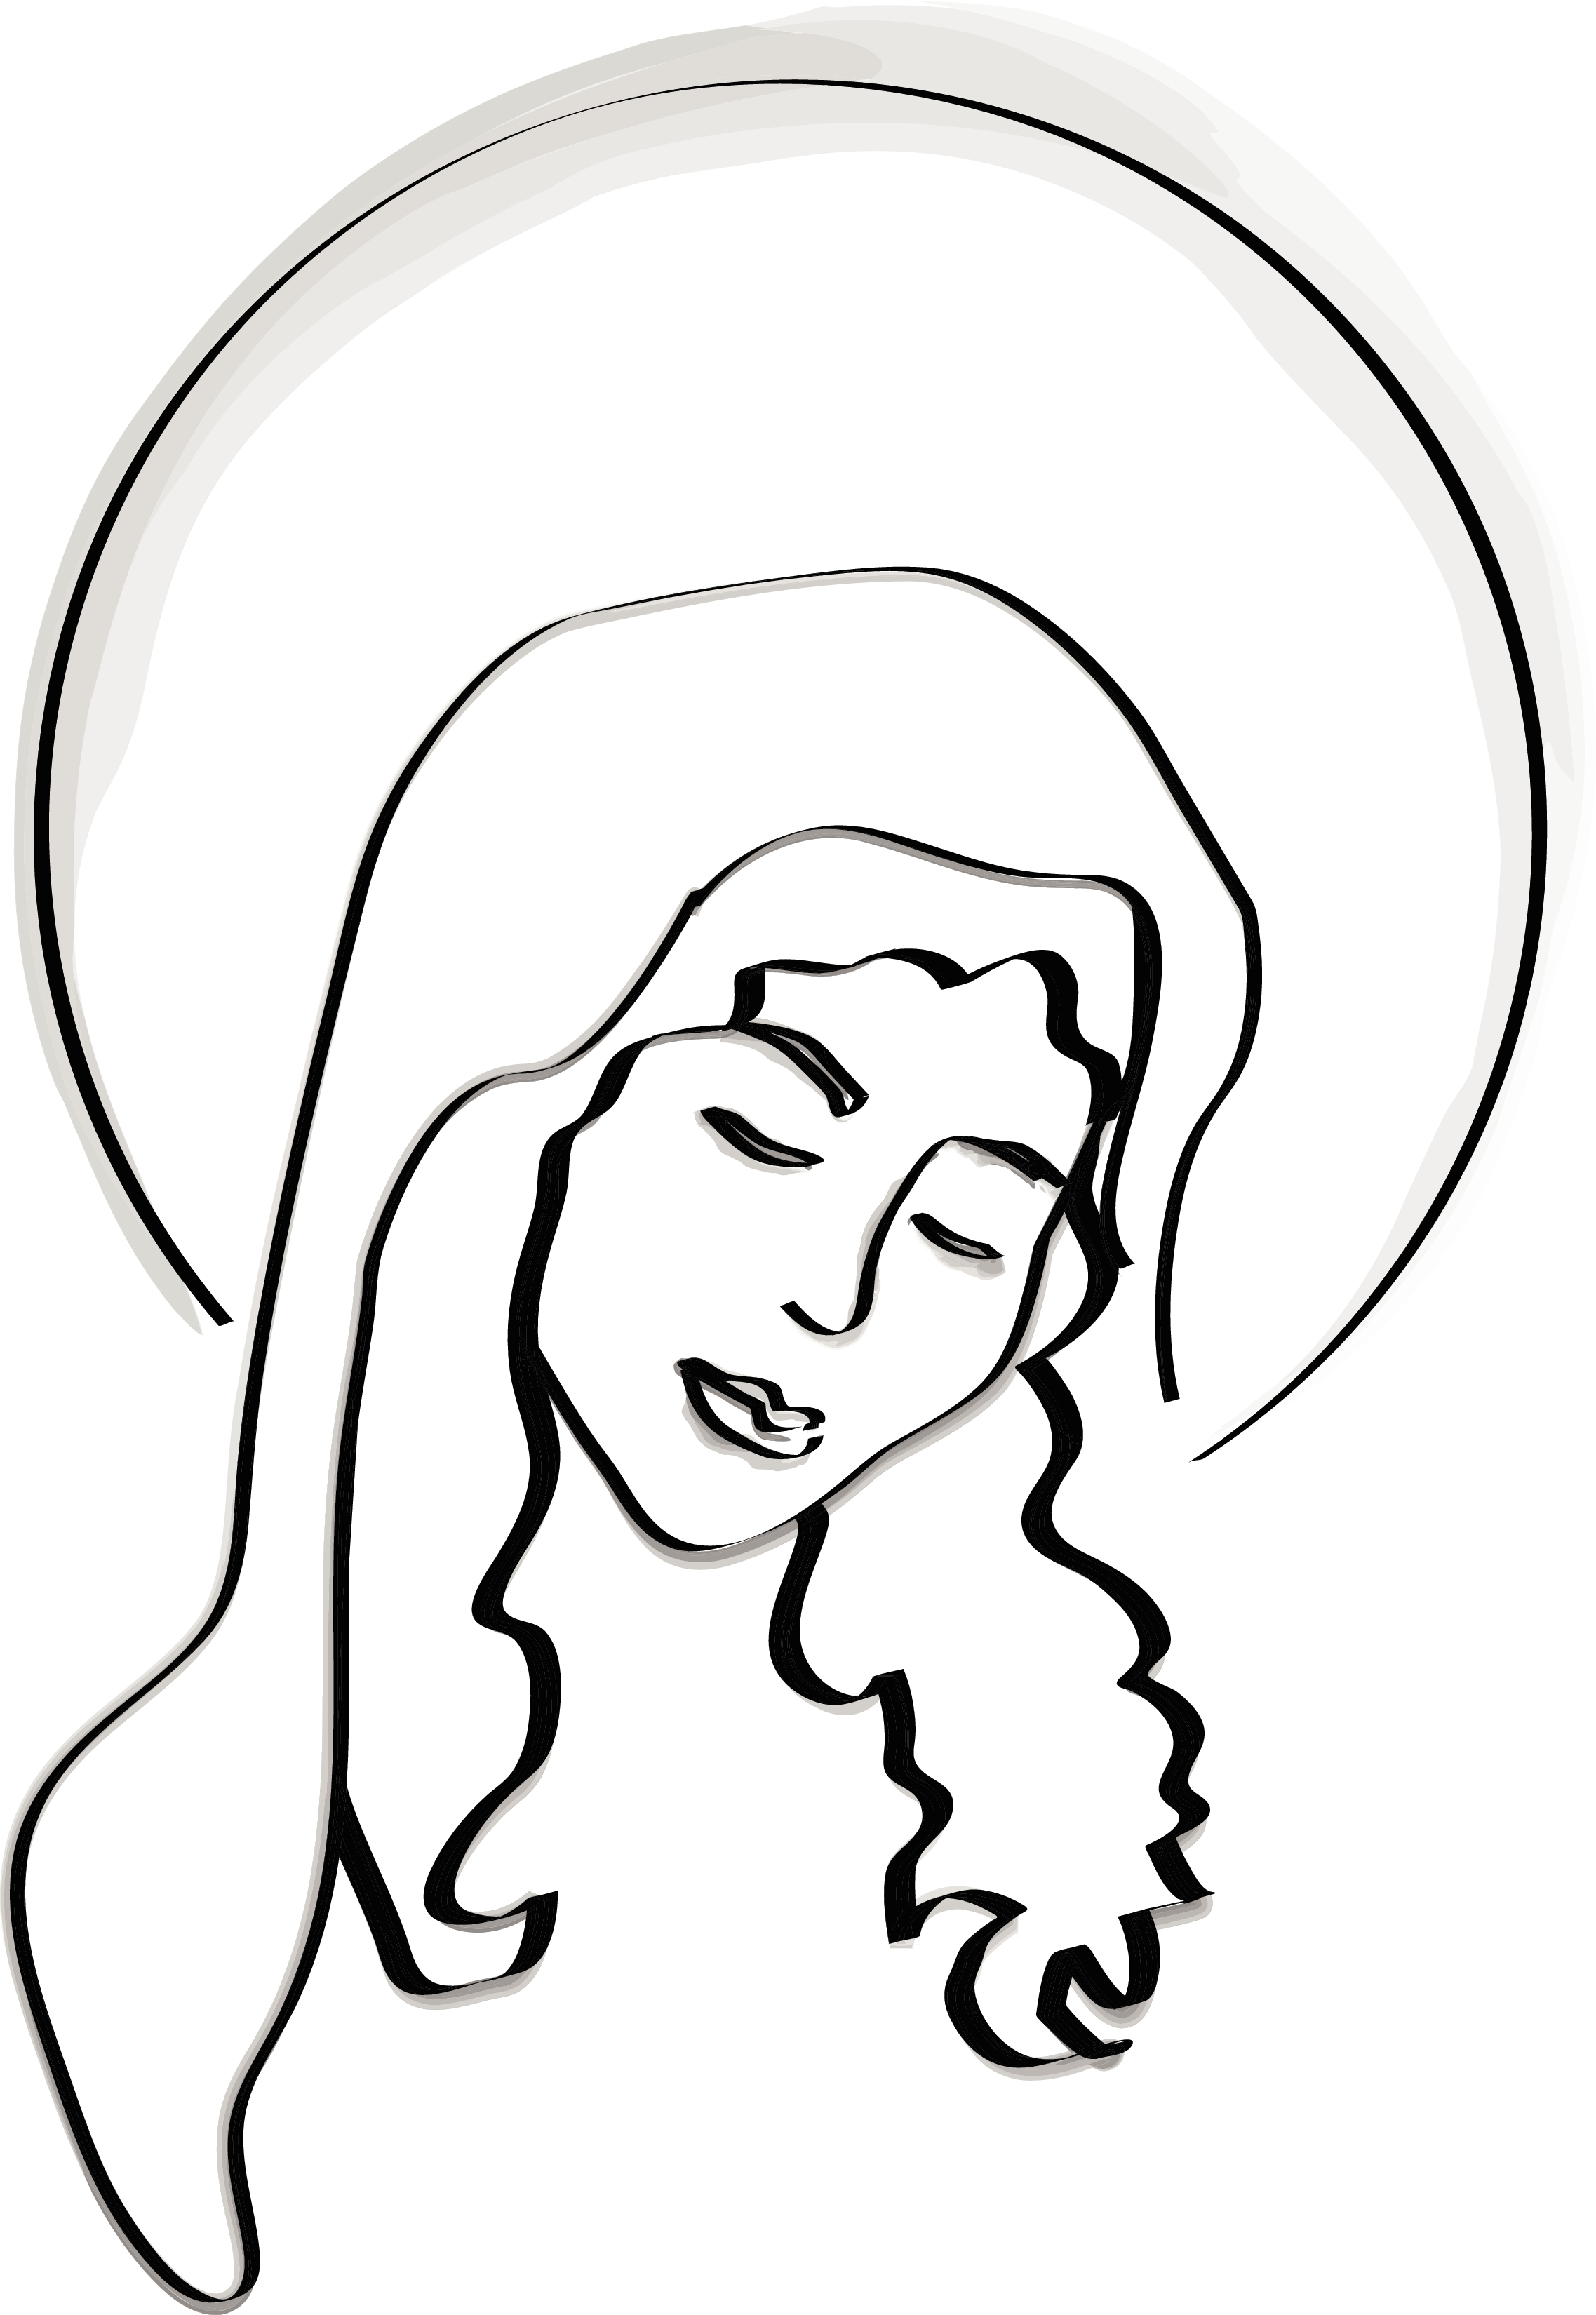 Free Mary Cliparts, Download Free Clip Art, Free Clip Art on Clipart.